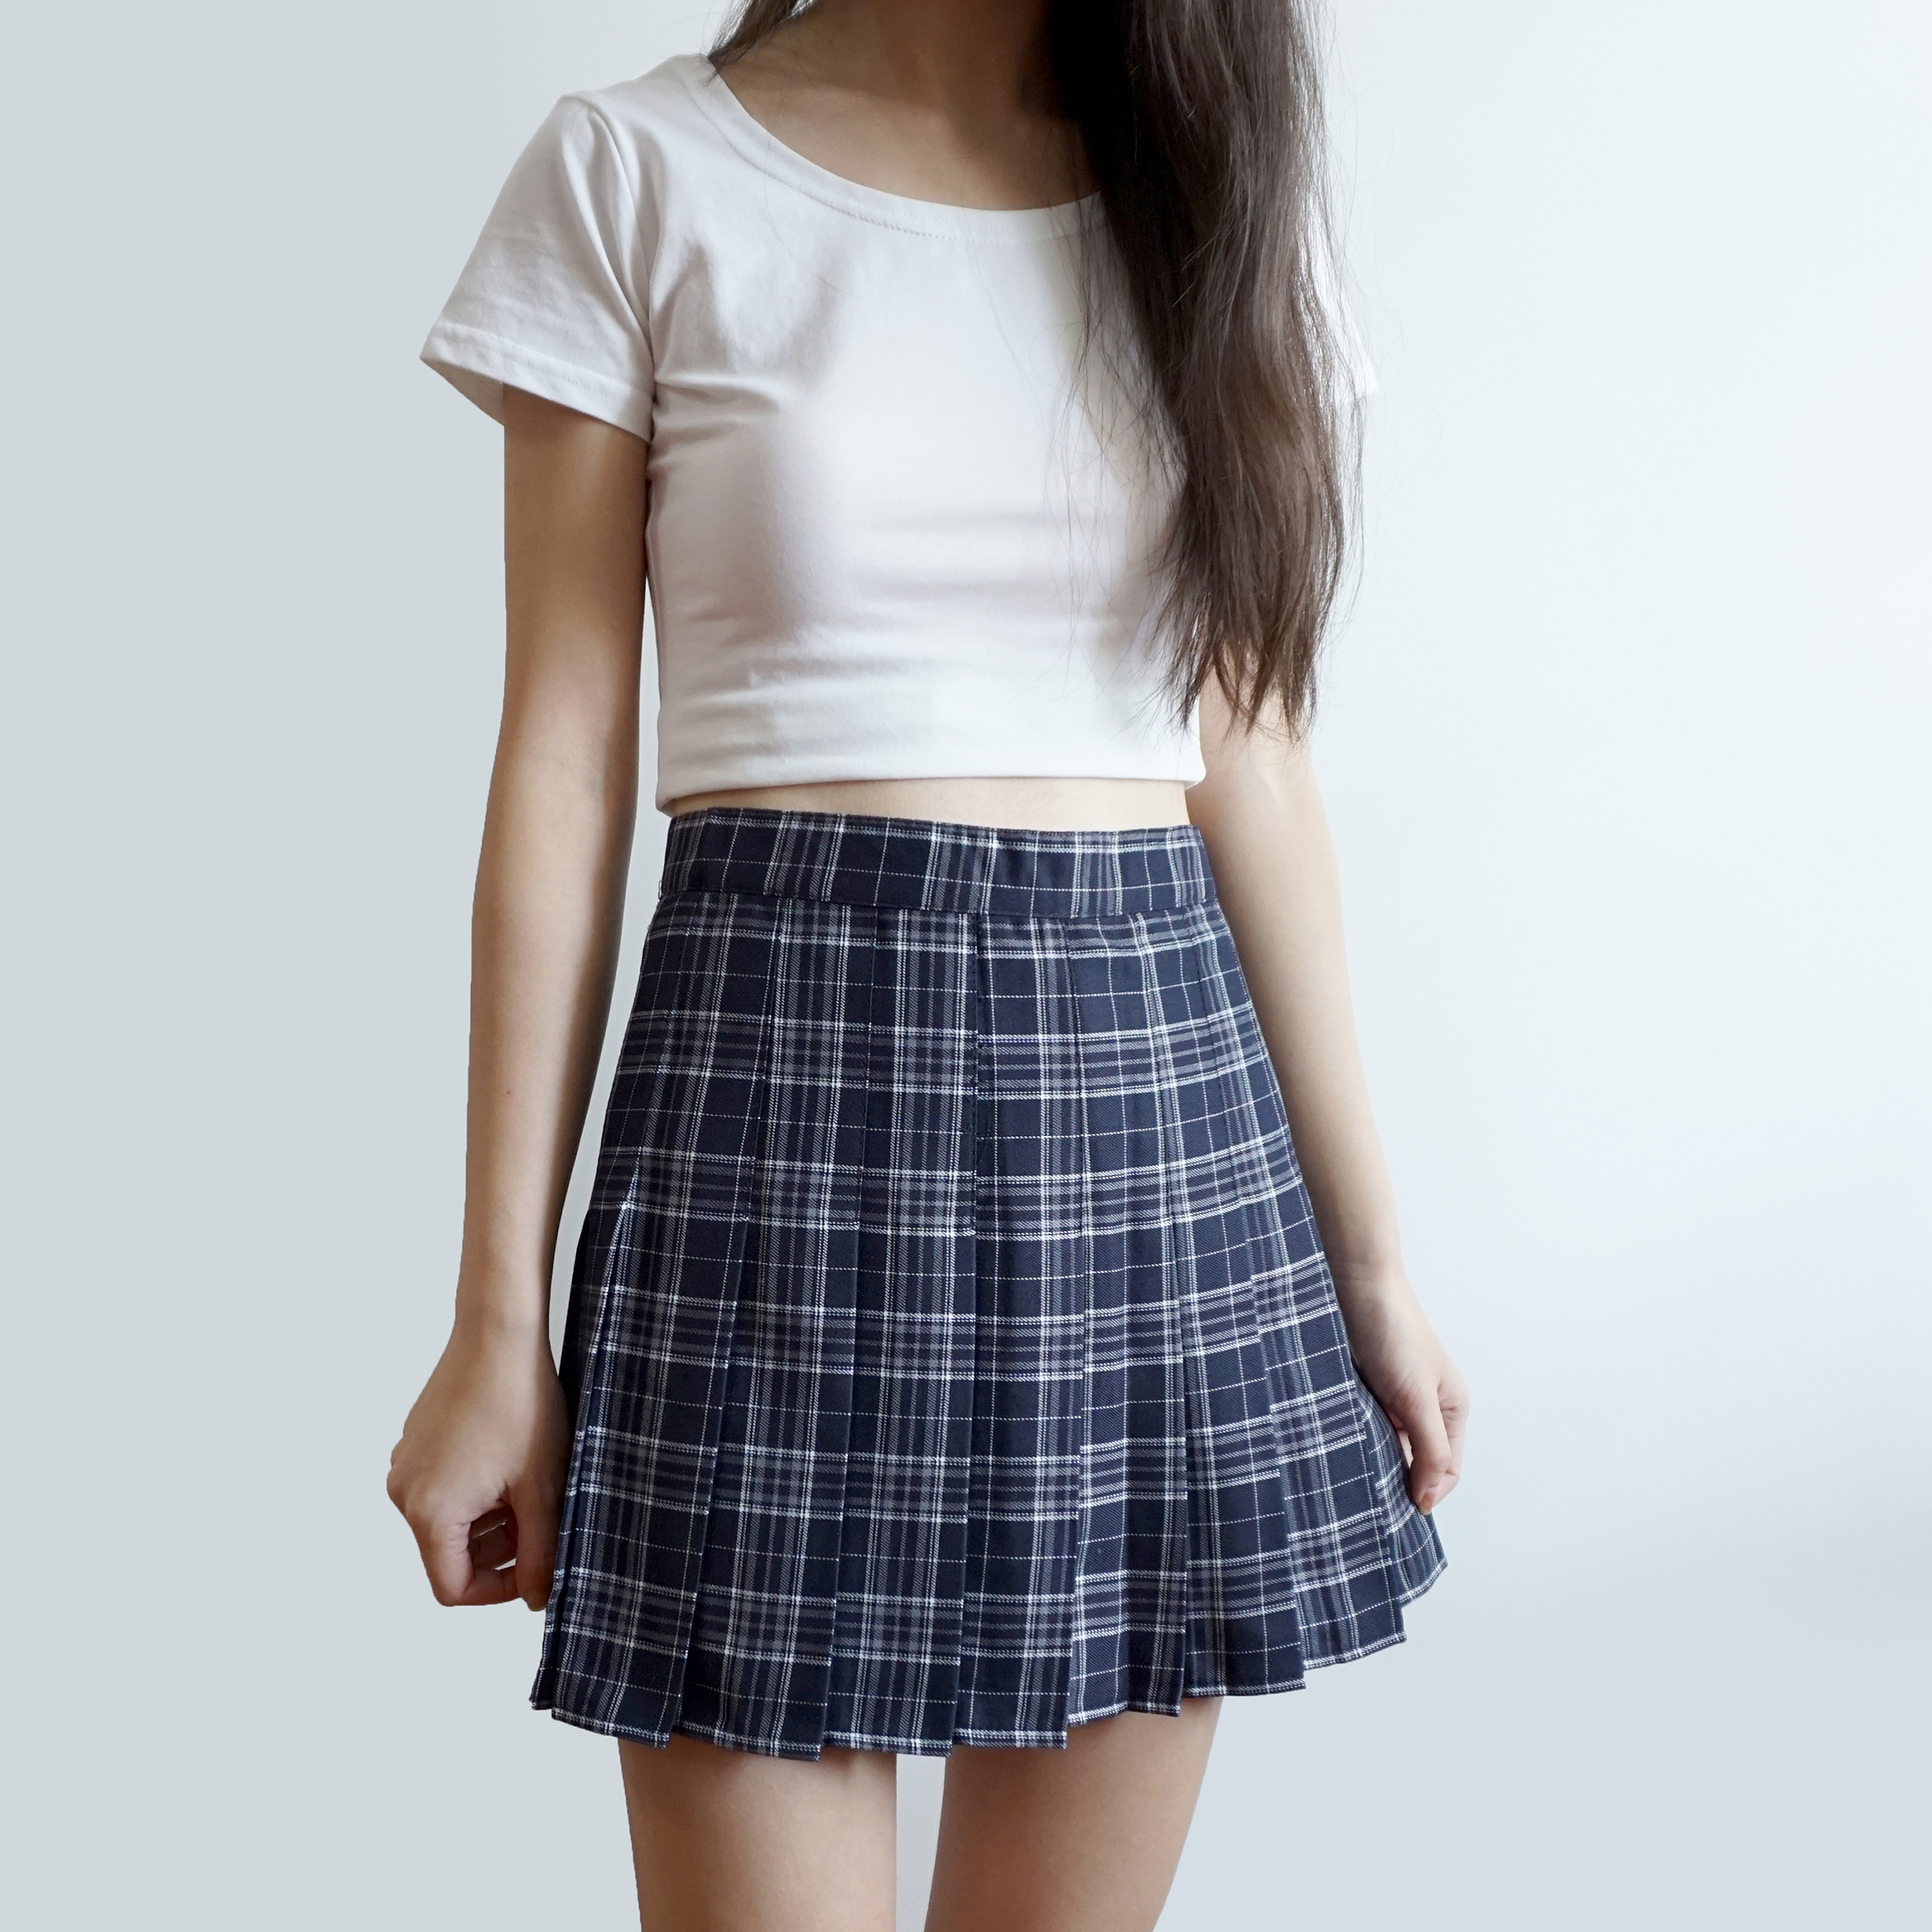 Plaid Tennis Skirt (3 Colors) · Megoosta Fashion · Free shipping ...